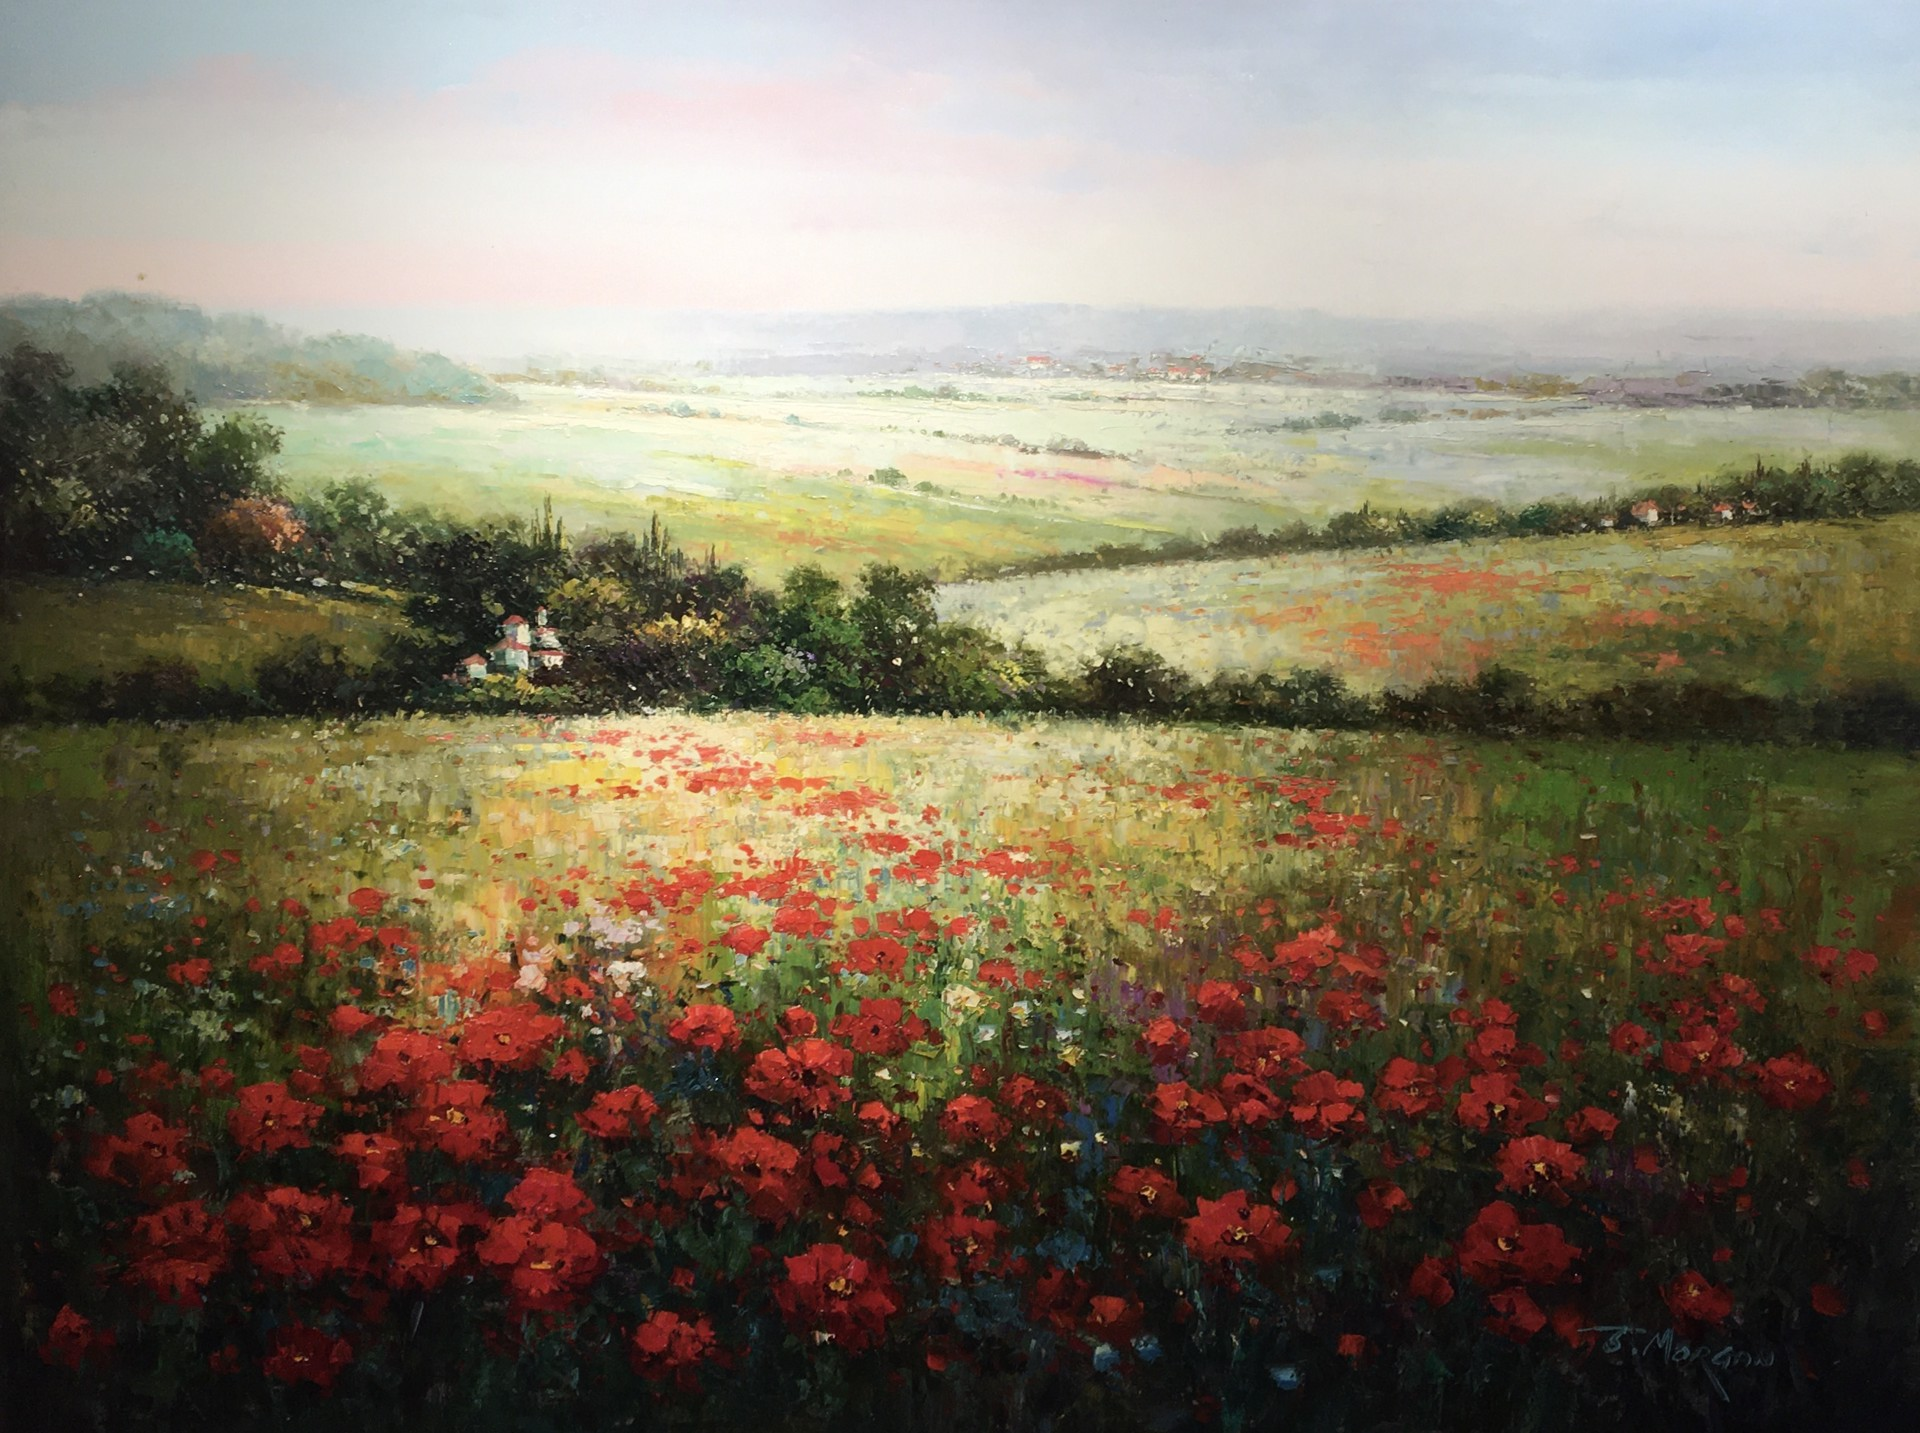 POPPIES BY THE VILLA (VILLAGE DISTANT) by J MORGAN